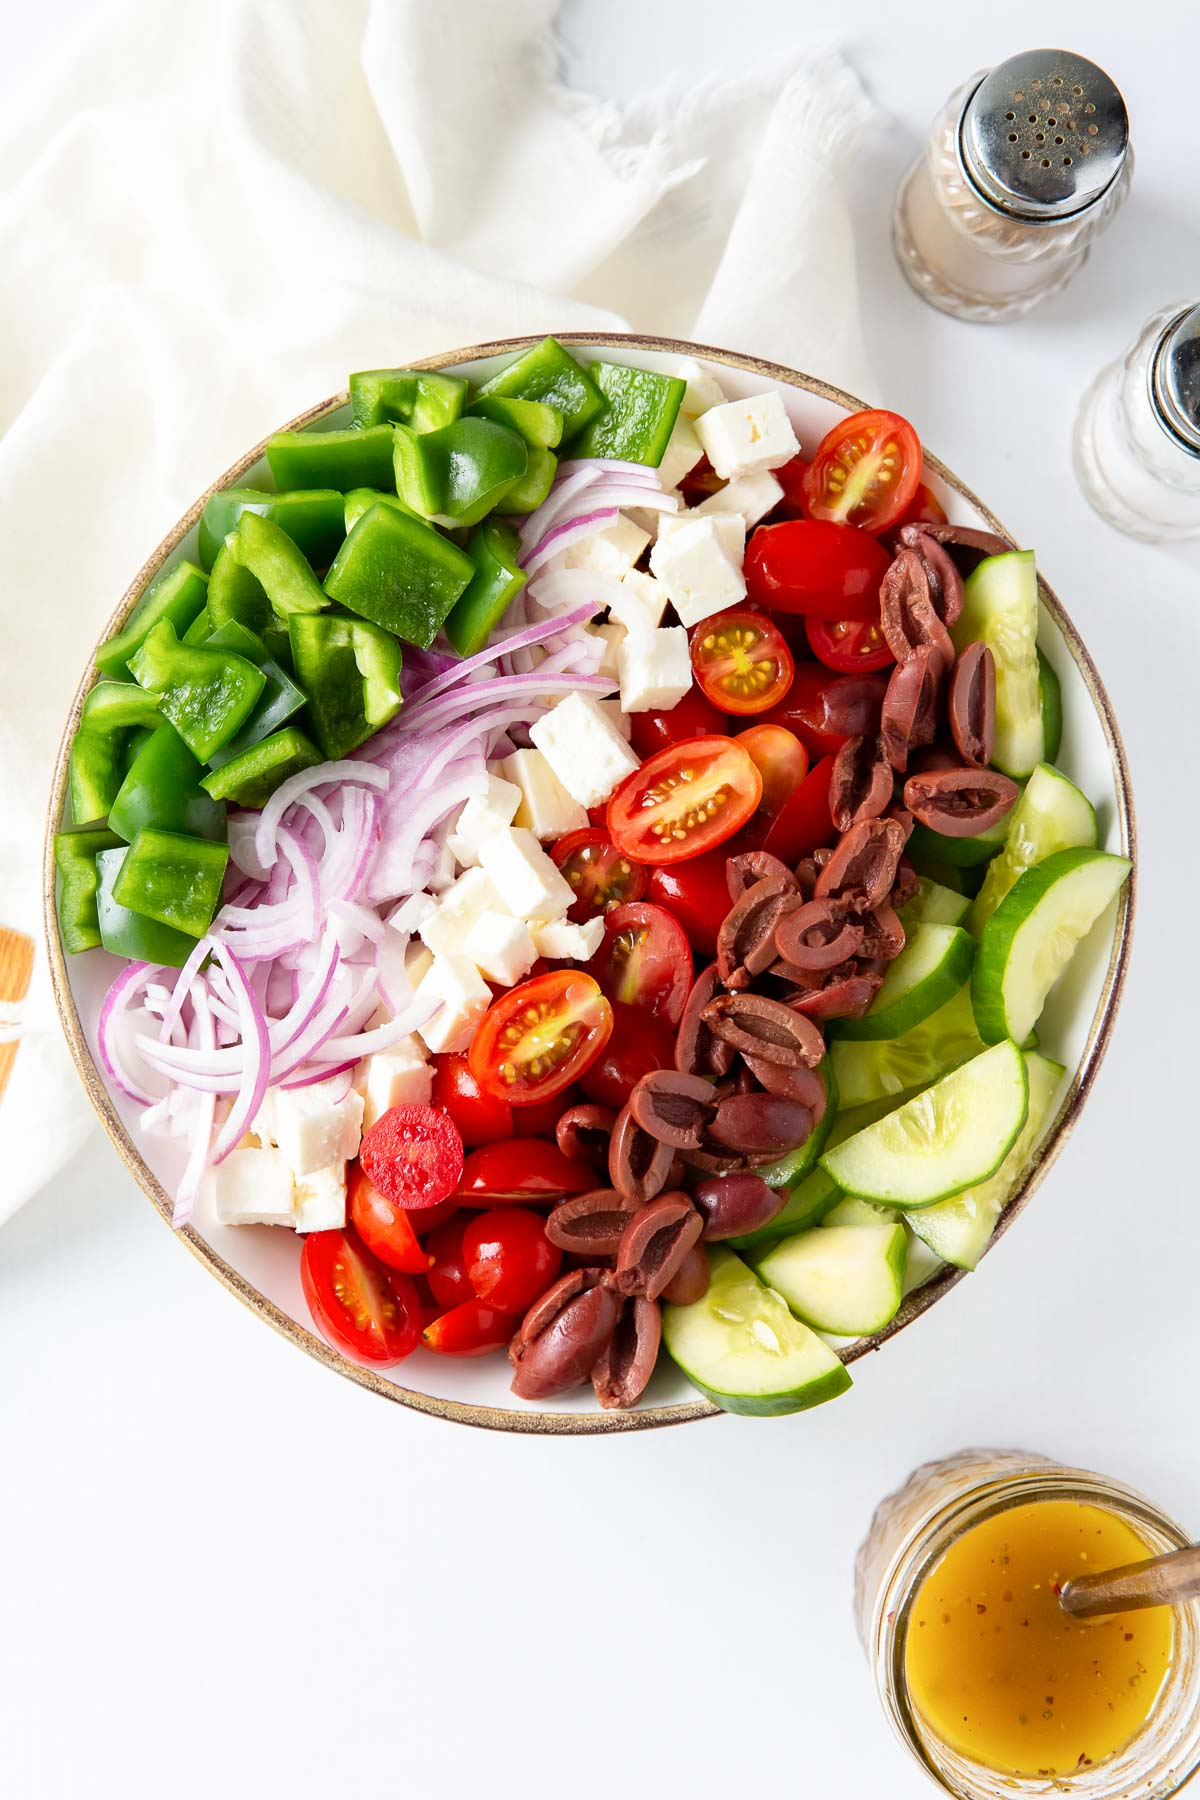 bell pepper, red onion, feta cheese, tomatoes, kalamata olives and cucumber arranged in rows in a large bowl